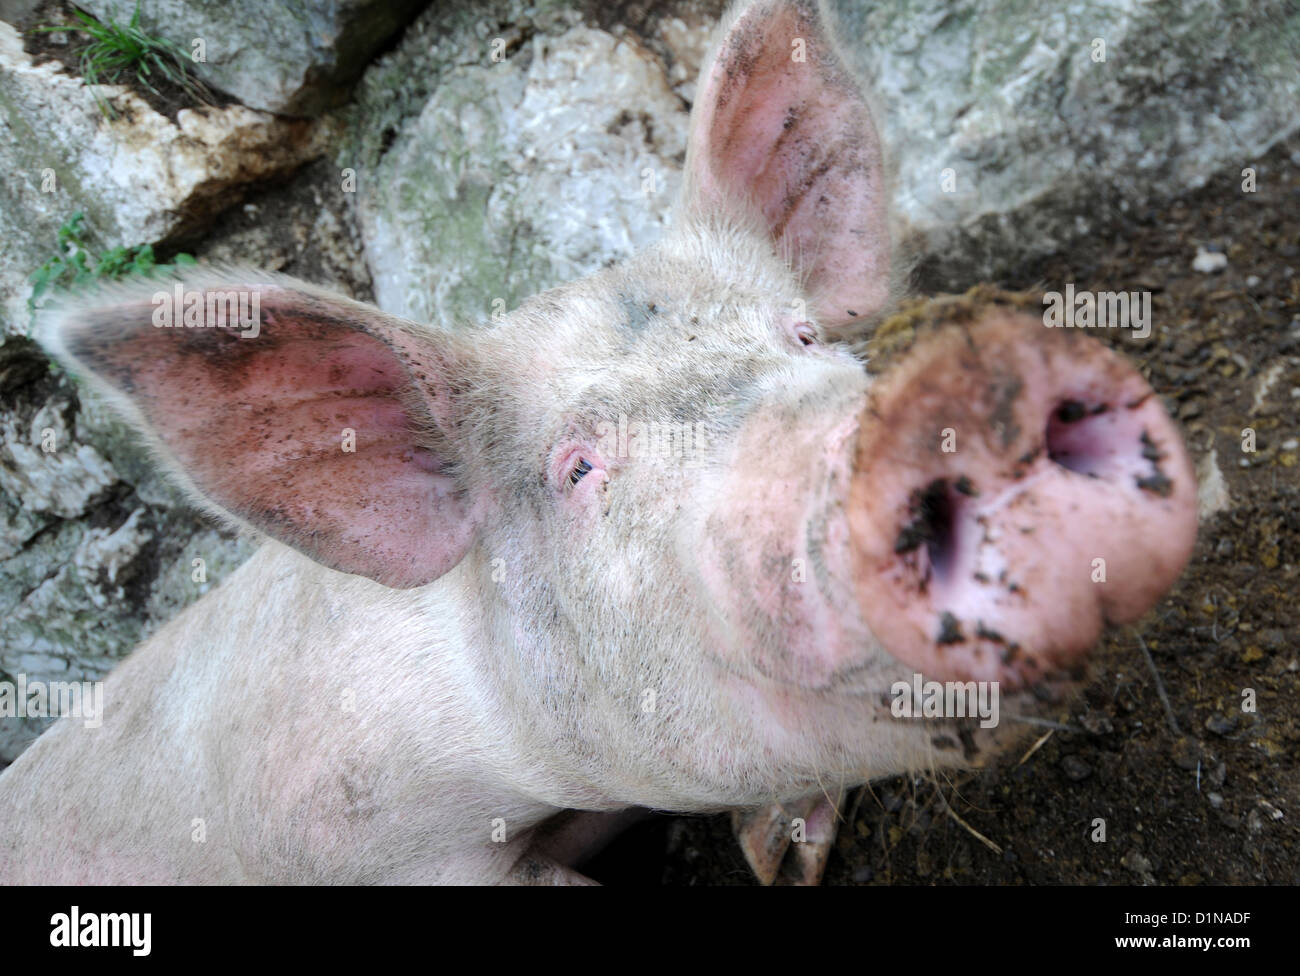 Pig's snout - Stock Image